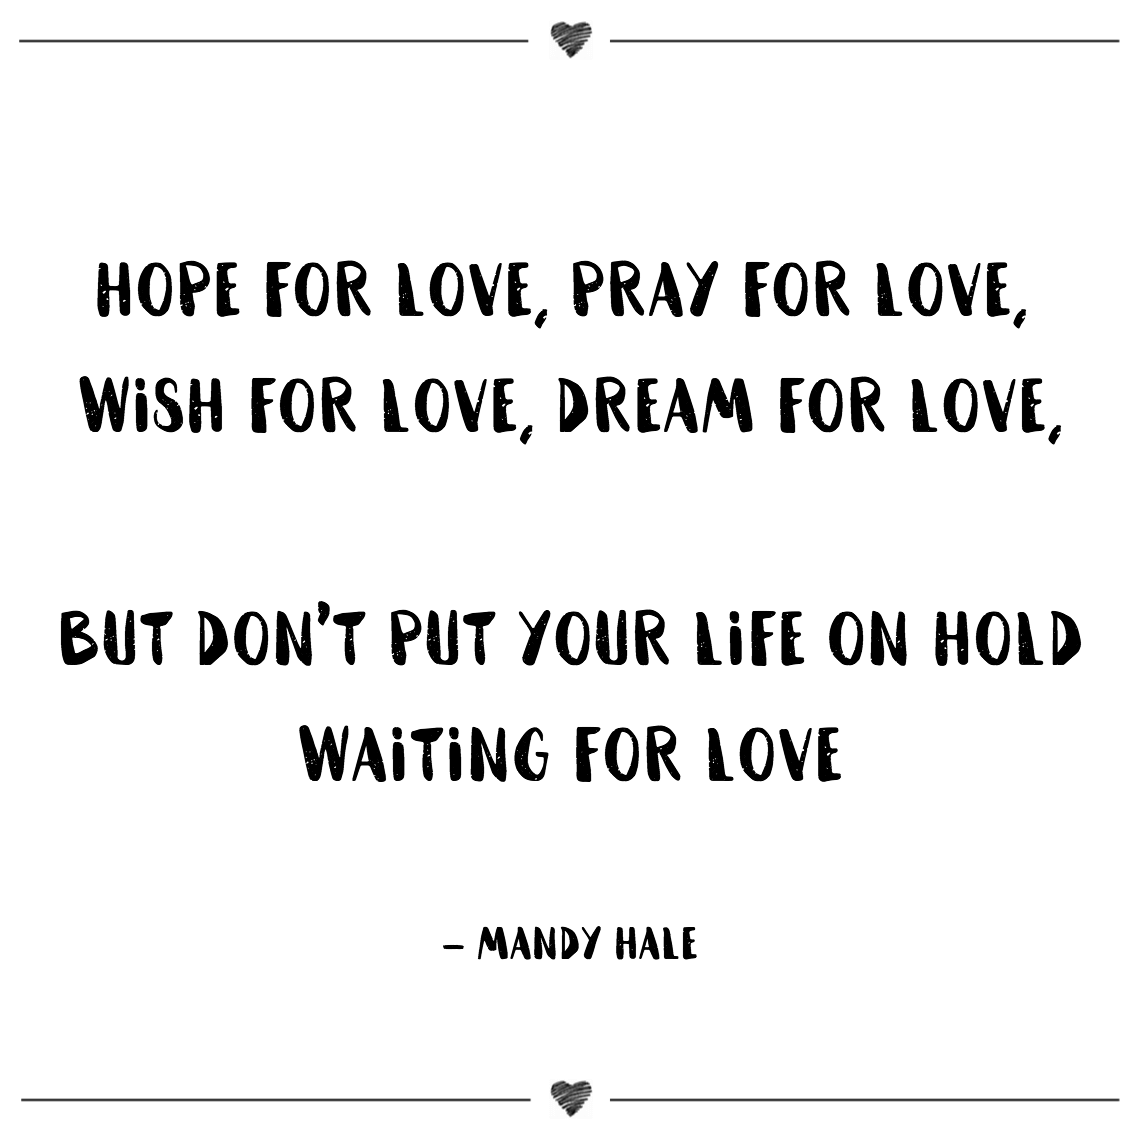 Hope for love, pray for love, wish for love, dream for love, but don't put your life on hold waiting for love mandy hale (1)